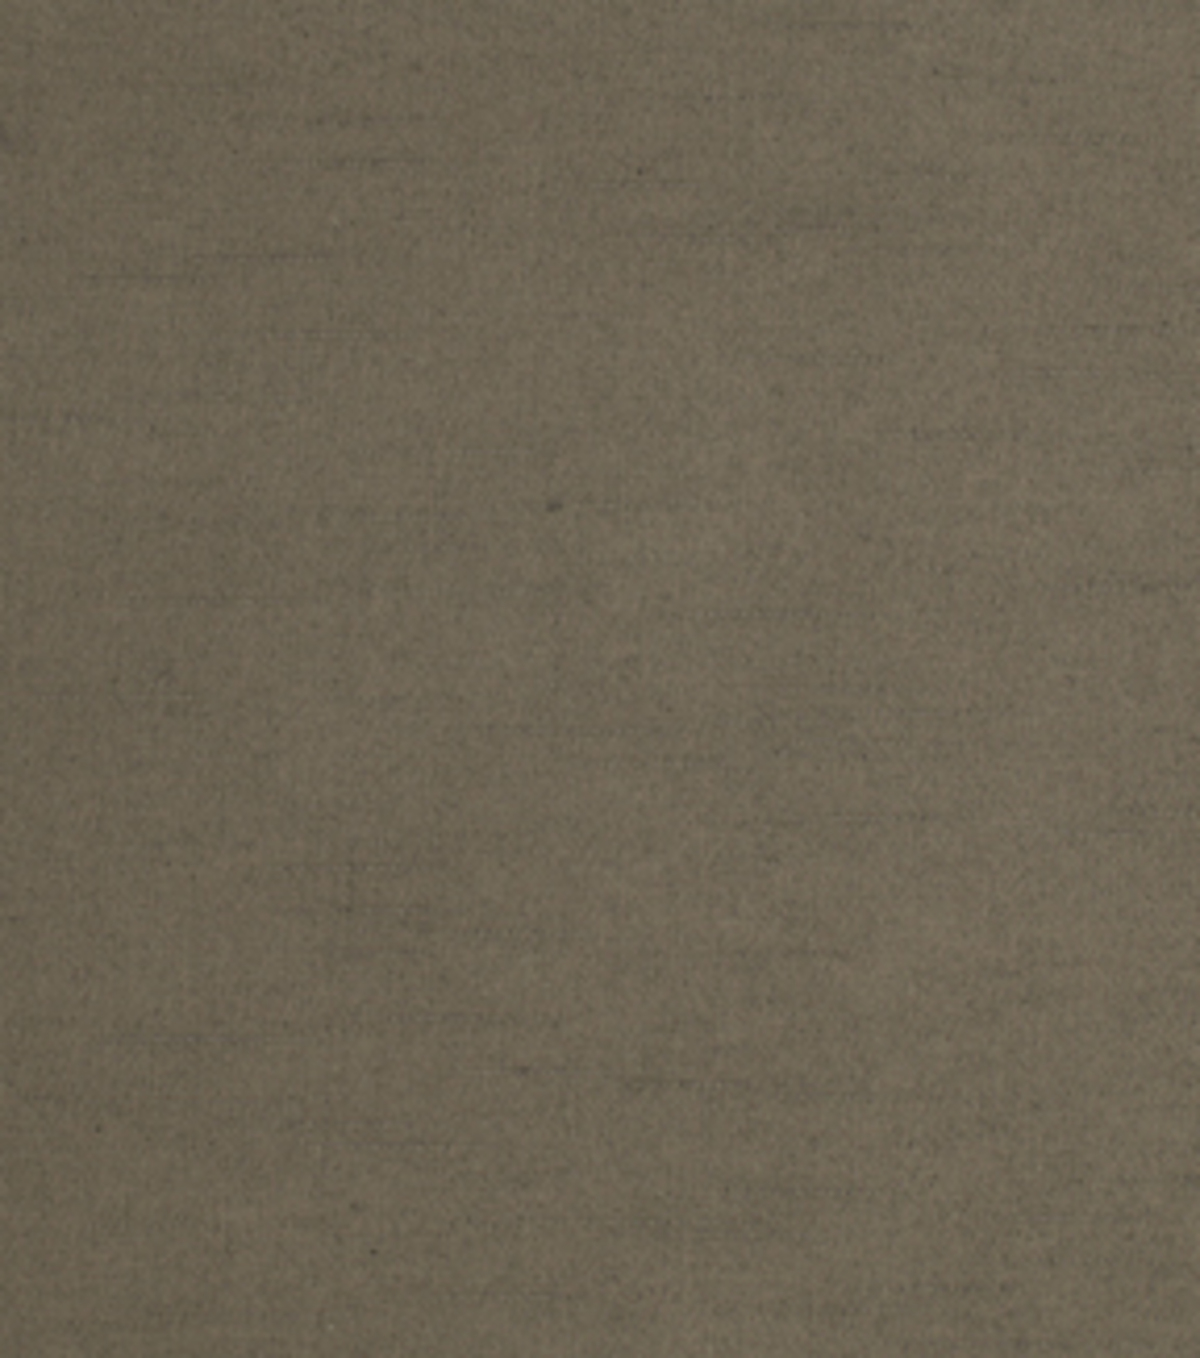 Home Decor 8\u0022x8\u0022 Fabric Swatch-Richloom Studio Silky Smoke